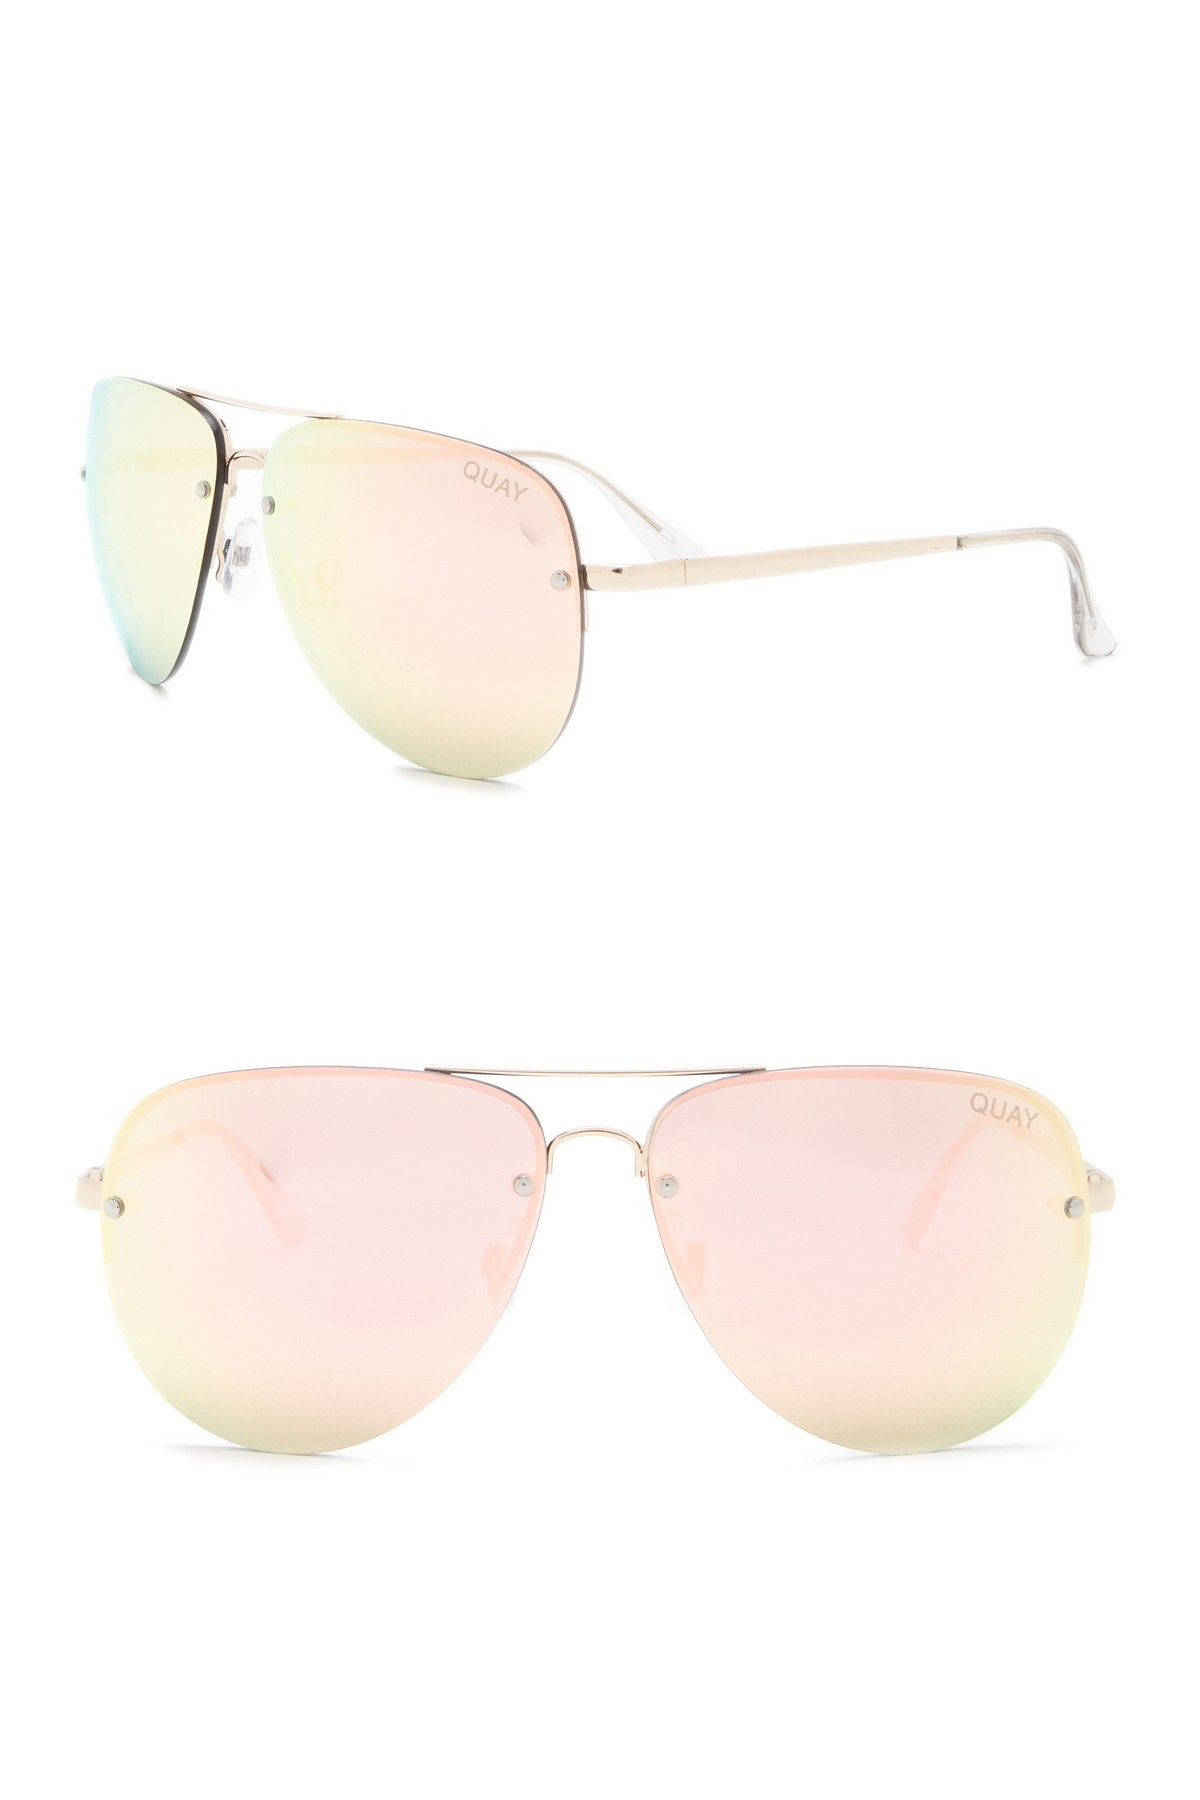 aadd8cf7b22 QUAY AUSTRALIA - 55mm Muse Aviator Sunglasses is now 58% off. Free Shipping  on orders over  100.